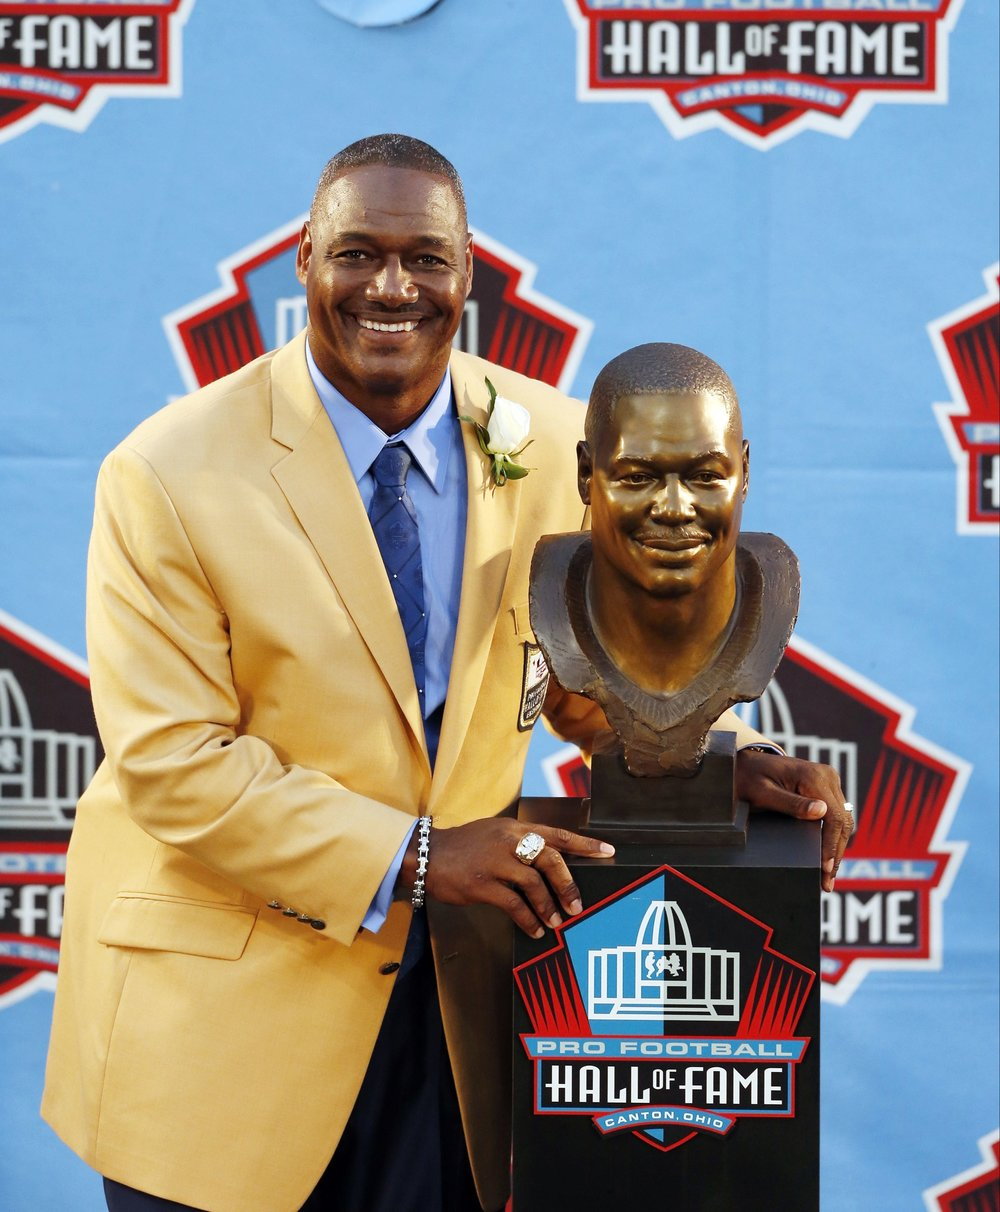 Derrick Brooks, Executive Director   - NFL Hall of Fame  - Tampa Bay Storm President  - NFLPA Appeals Officer